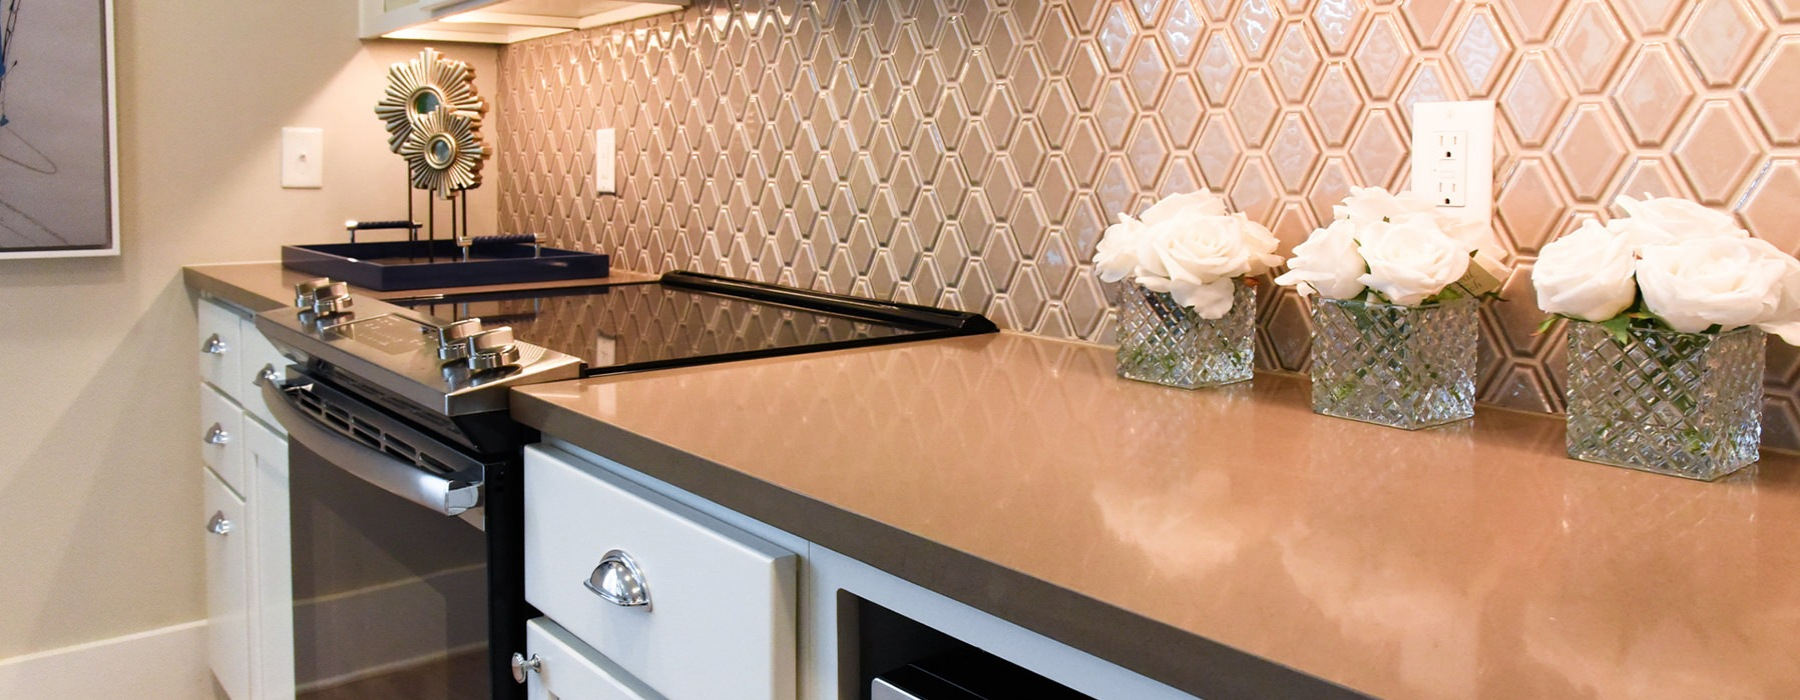 Kitchen features under-cabinet lighting